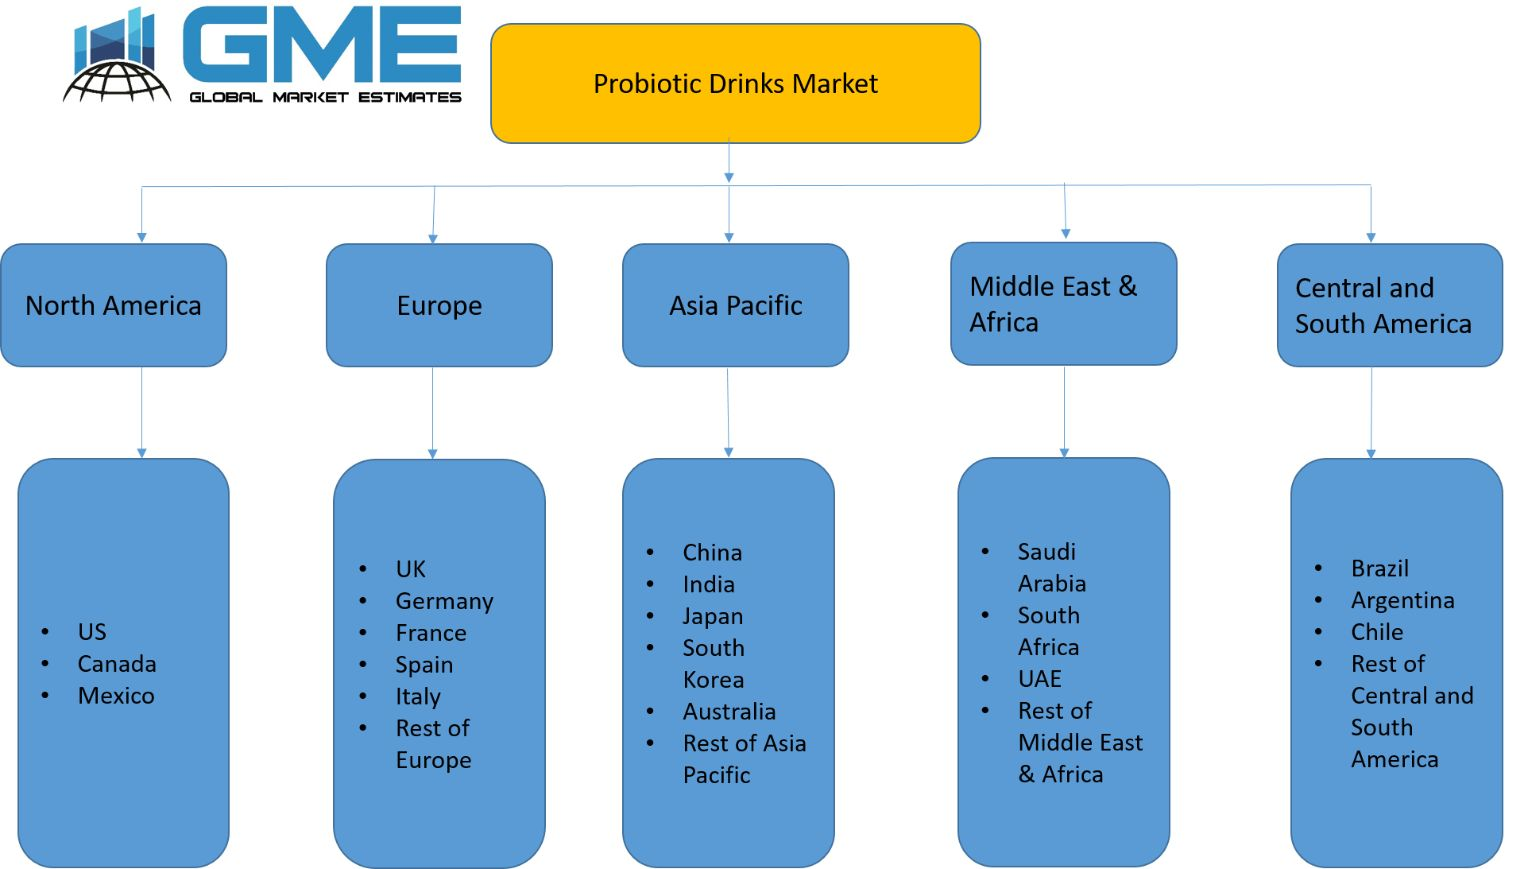 Probiotic Drinks Market - Regional Analysis